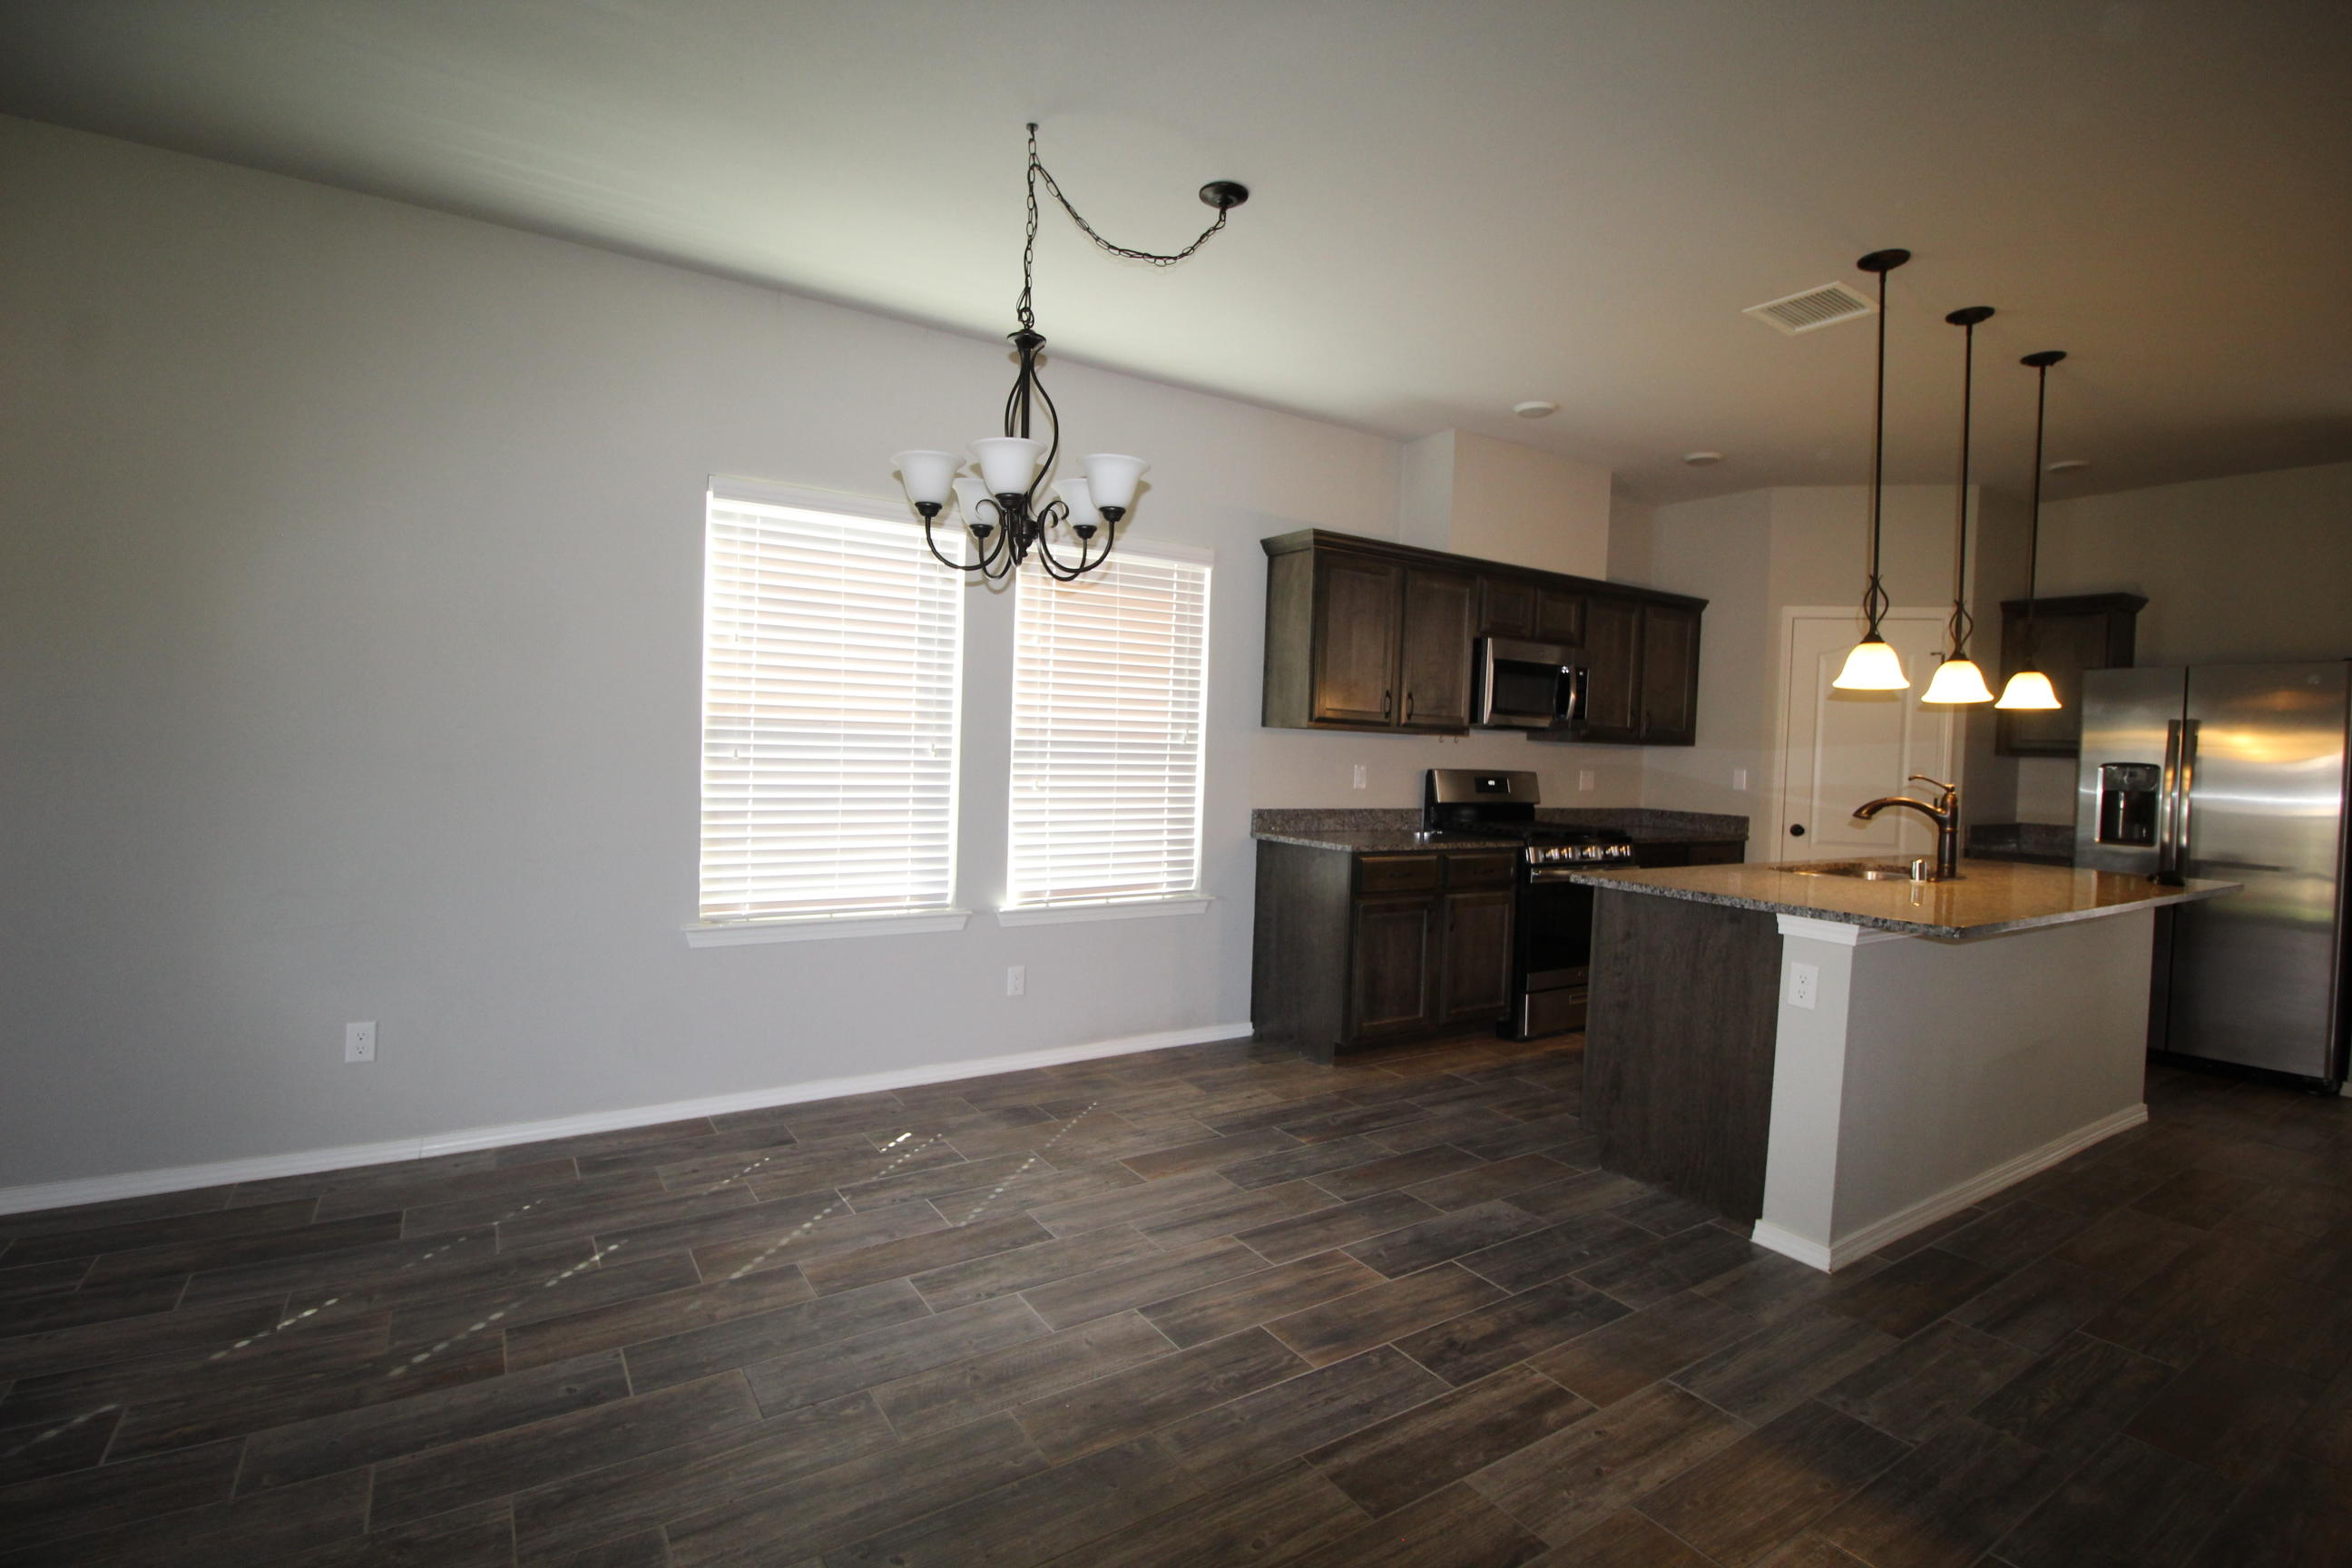 1000 AIRCOUPE, El Paso, Texas 79928, 3 Bedrooms Bedrooms, ,2 BathroomsBathrooms,Residential Rental,For Rent,AIRCOUPE,834701